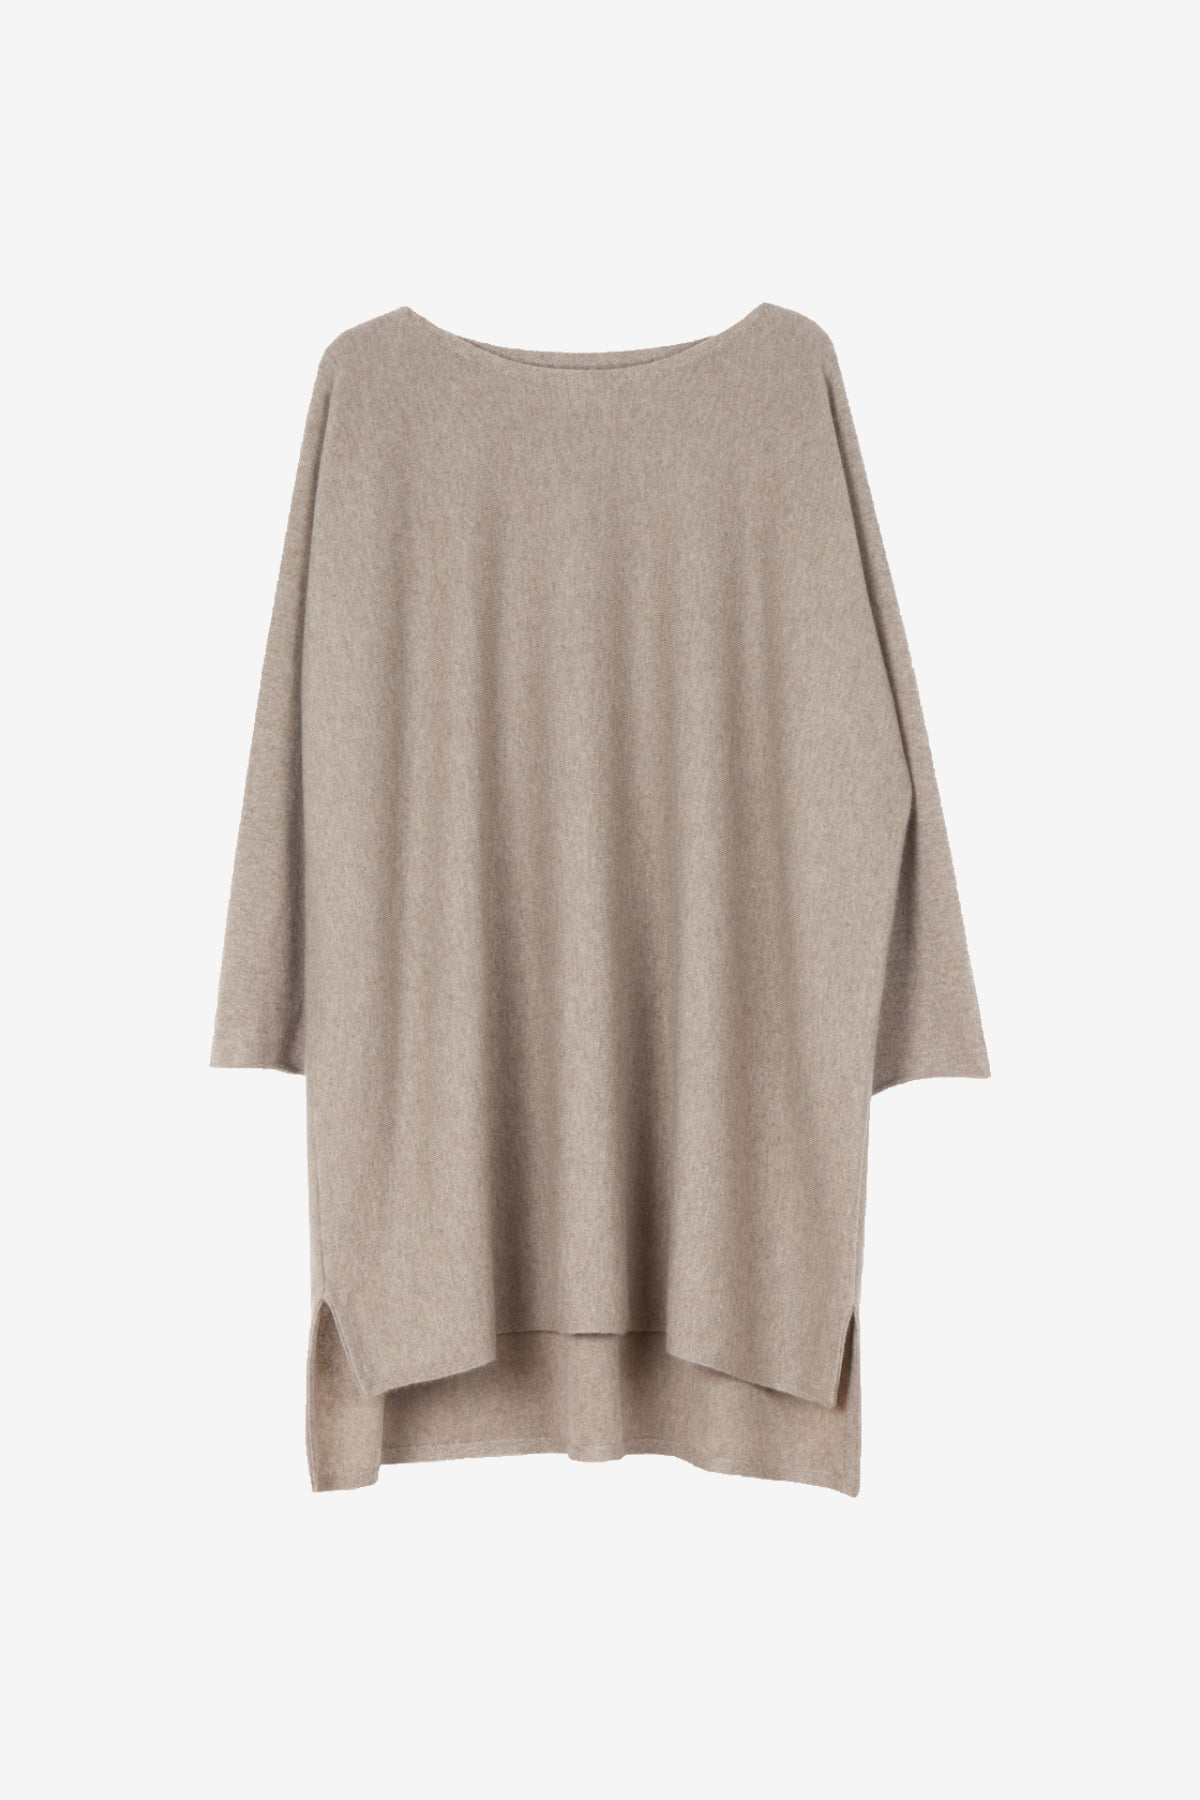 Eelia cashmere tunic in soft brown